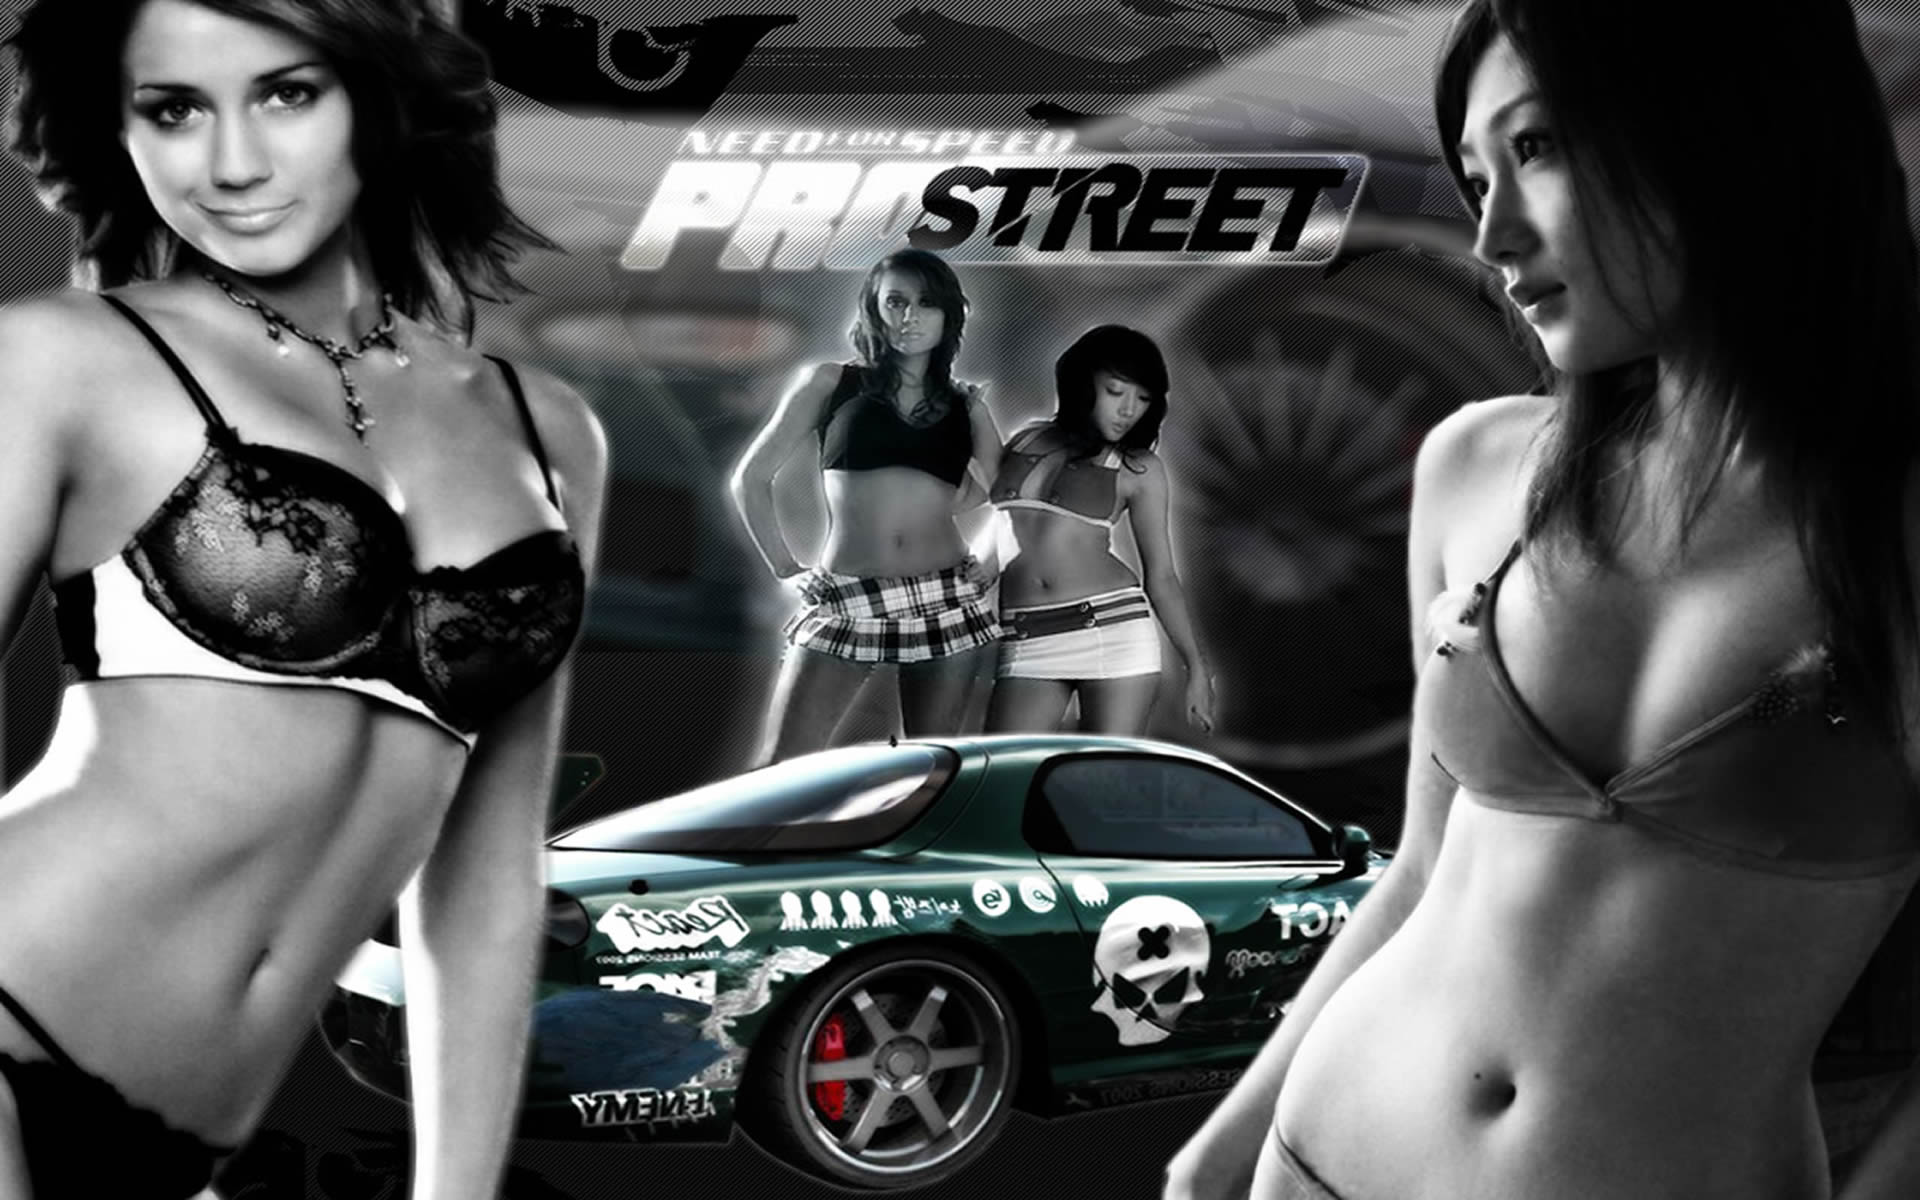 Nfs hentai pictures naked photos